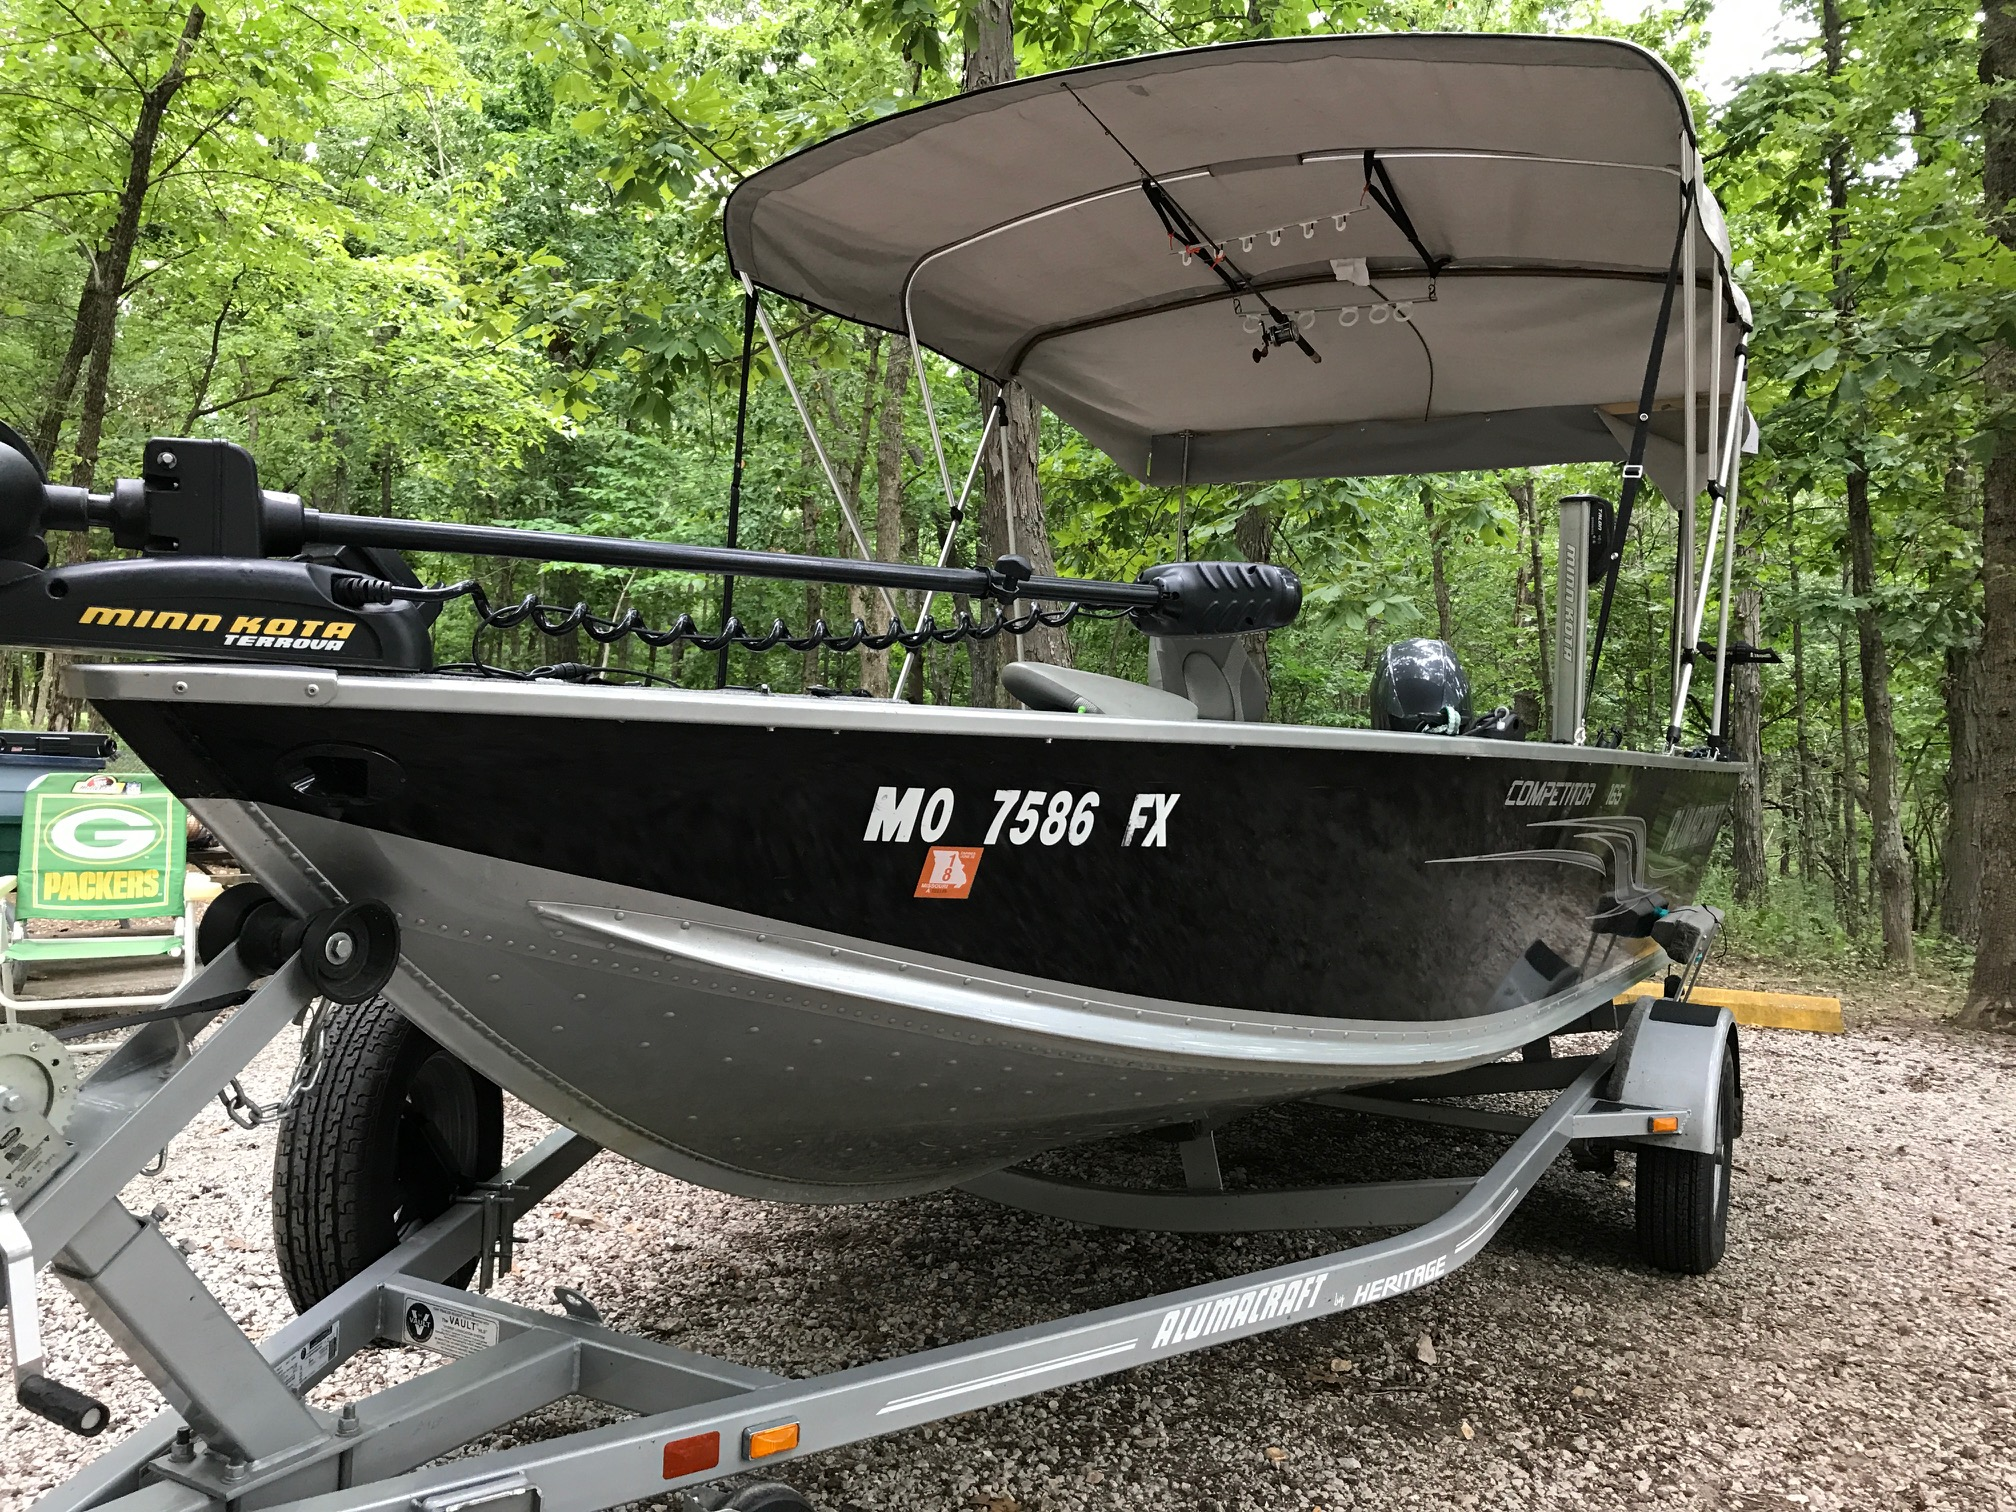 I extended the Bimini top to make a full canopy to the back of the boat. Rain or hot sun are kept where they belong away from me! & Hot Crappie Bite! - Stockton Lake - OzarkAnglers.Com Forum